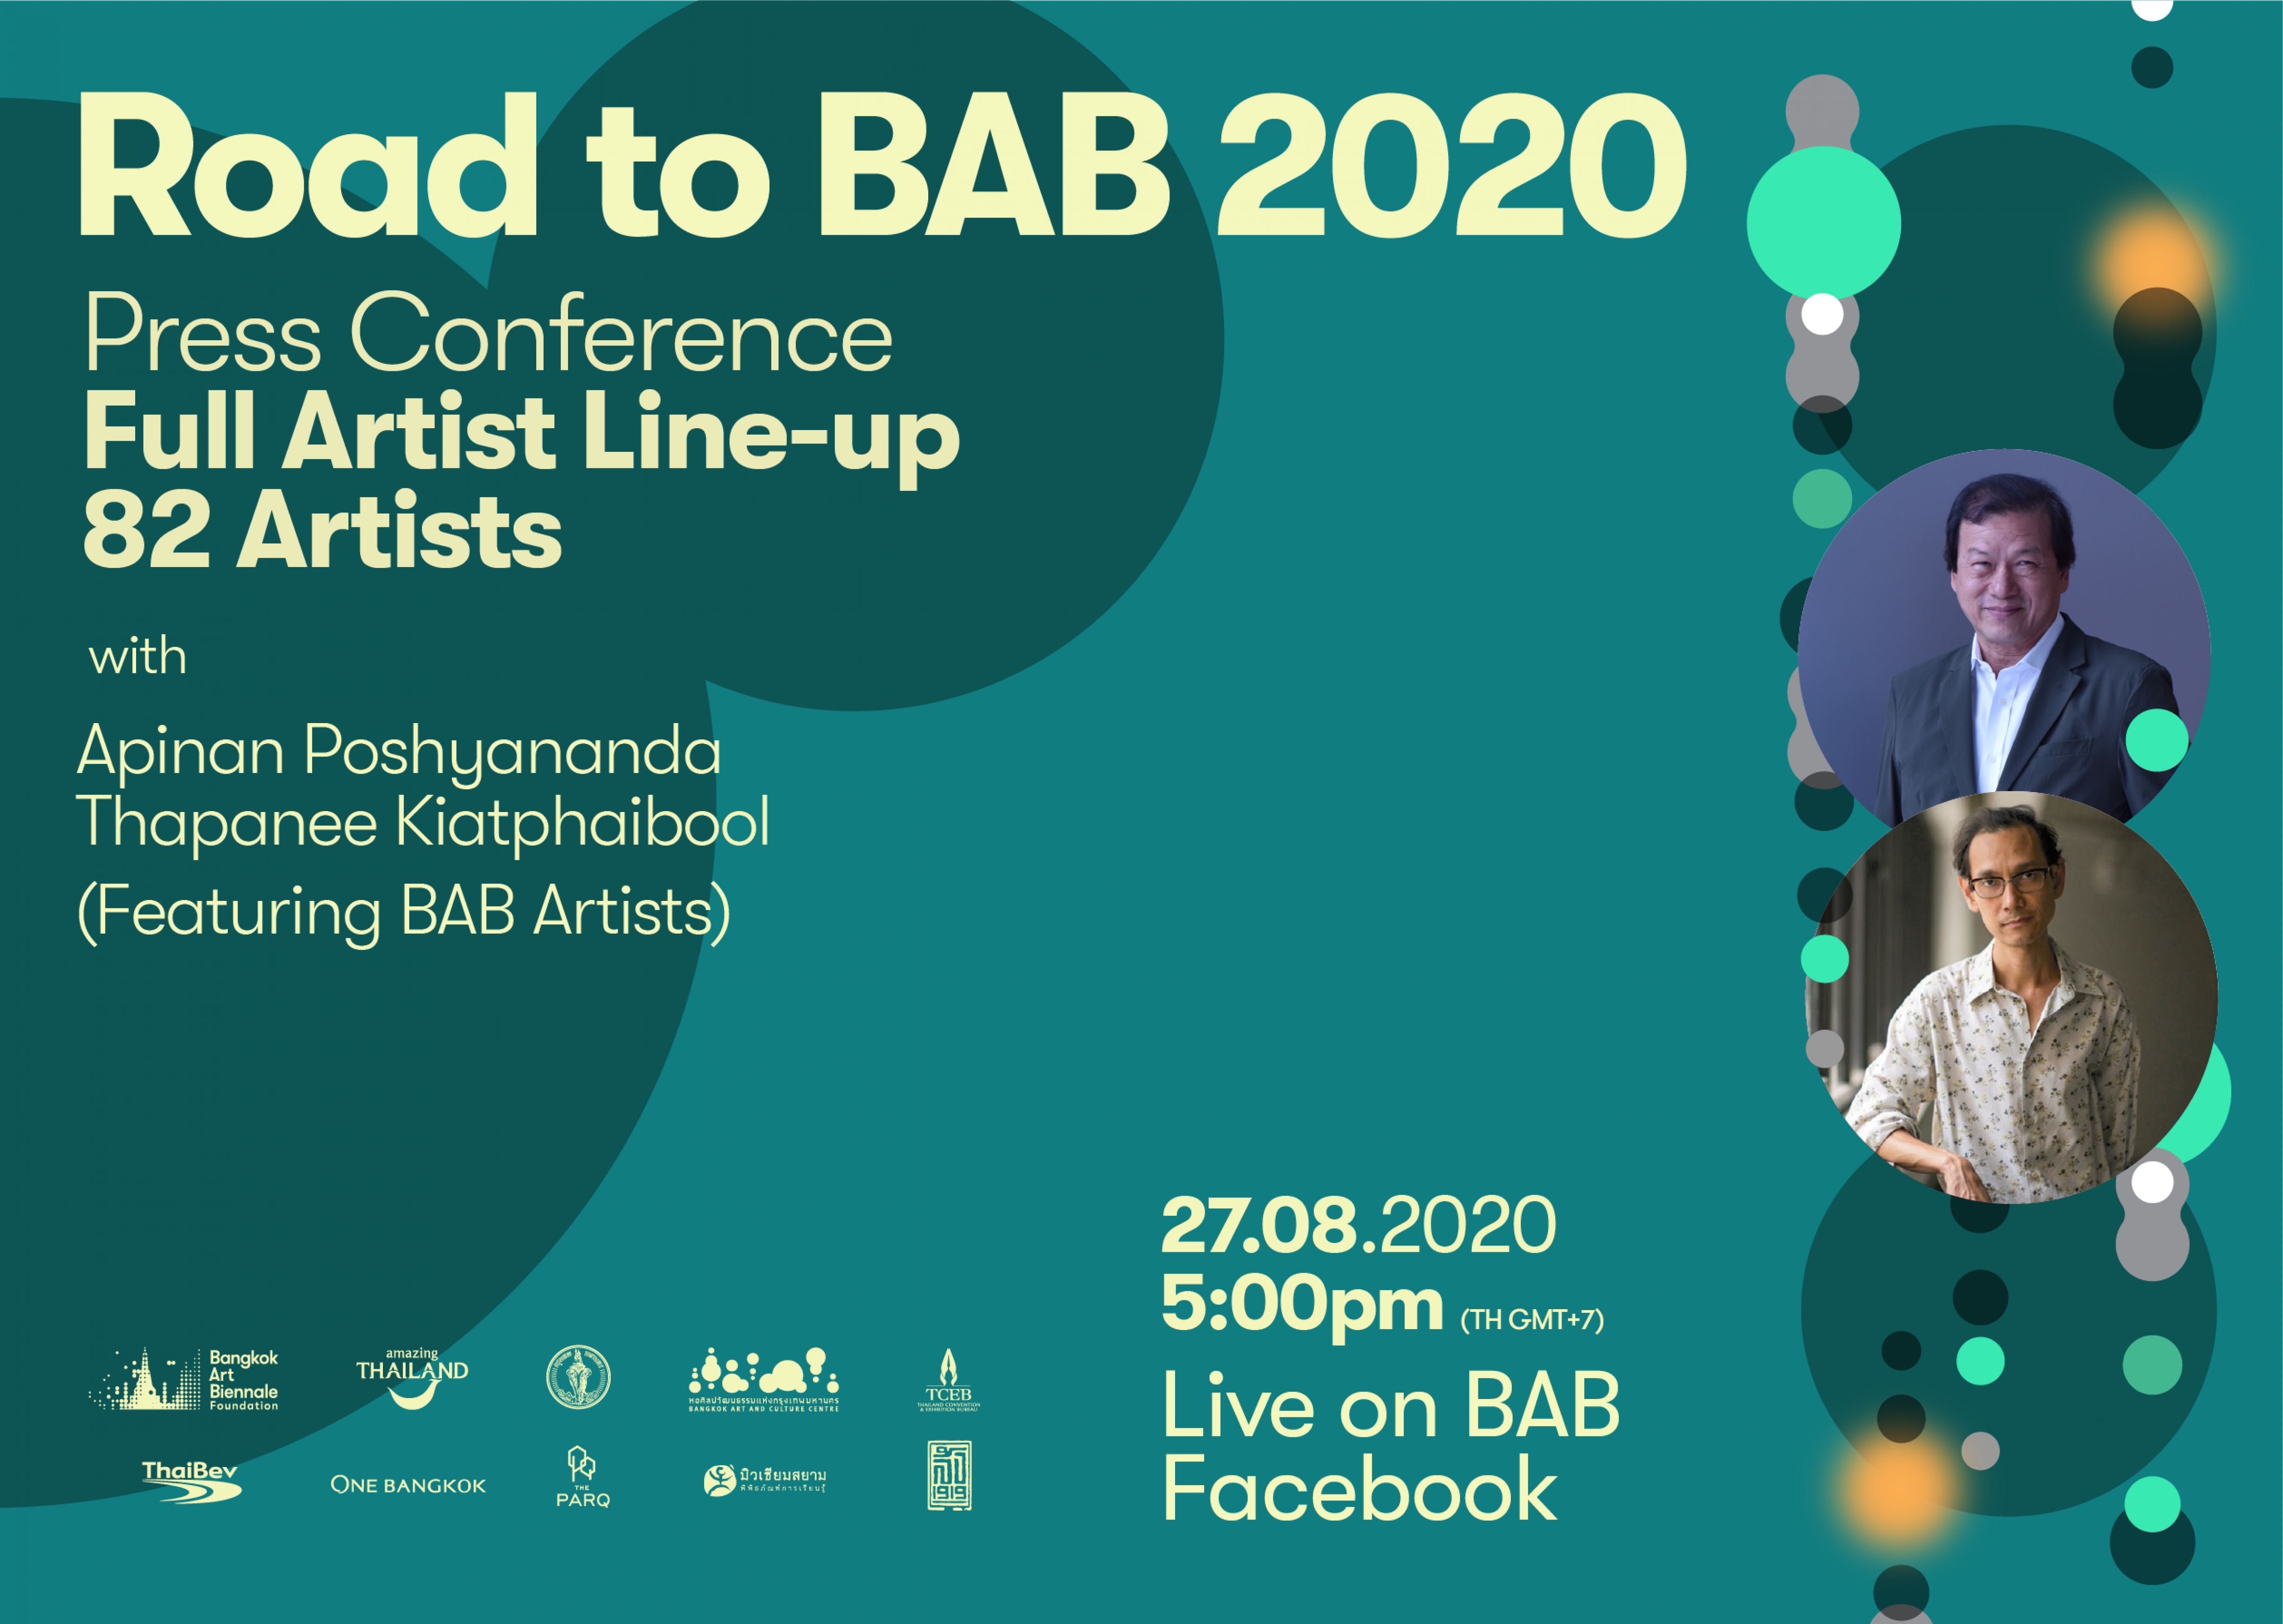 Road to BAB 2020 | Full Artist Line-up